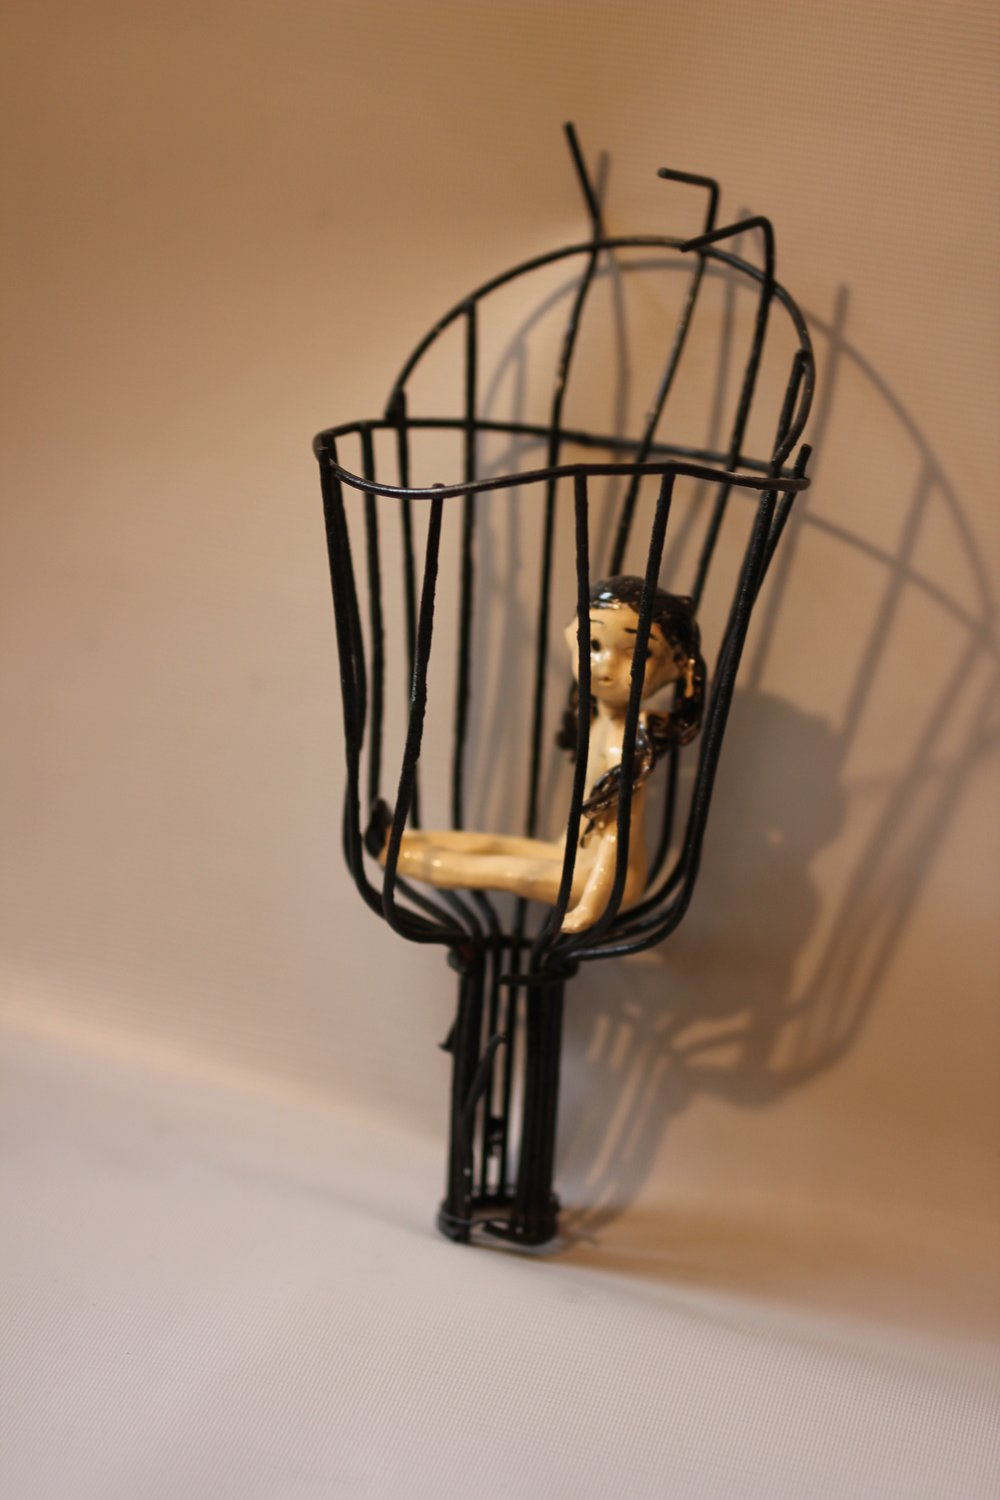 Image 4 - Caged - C Radclyffe .jpg